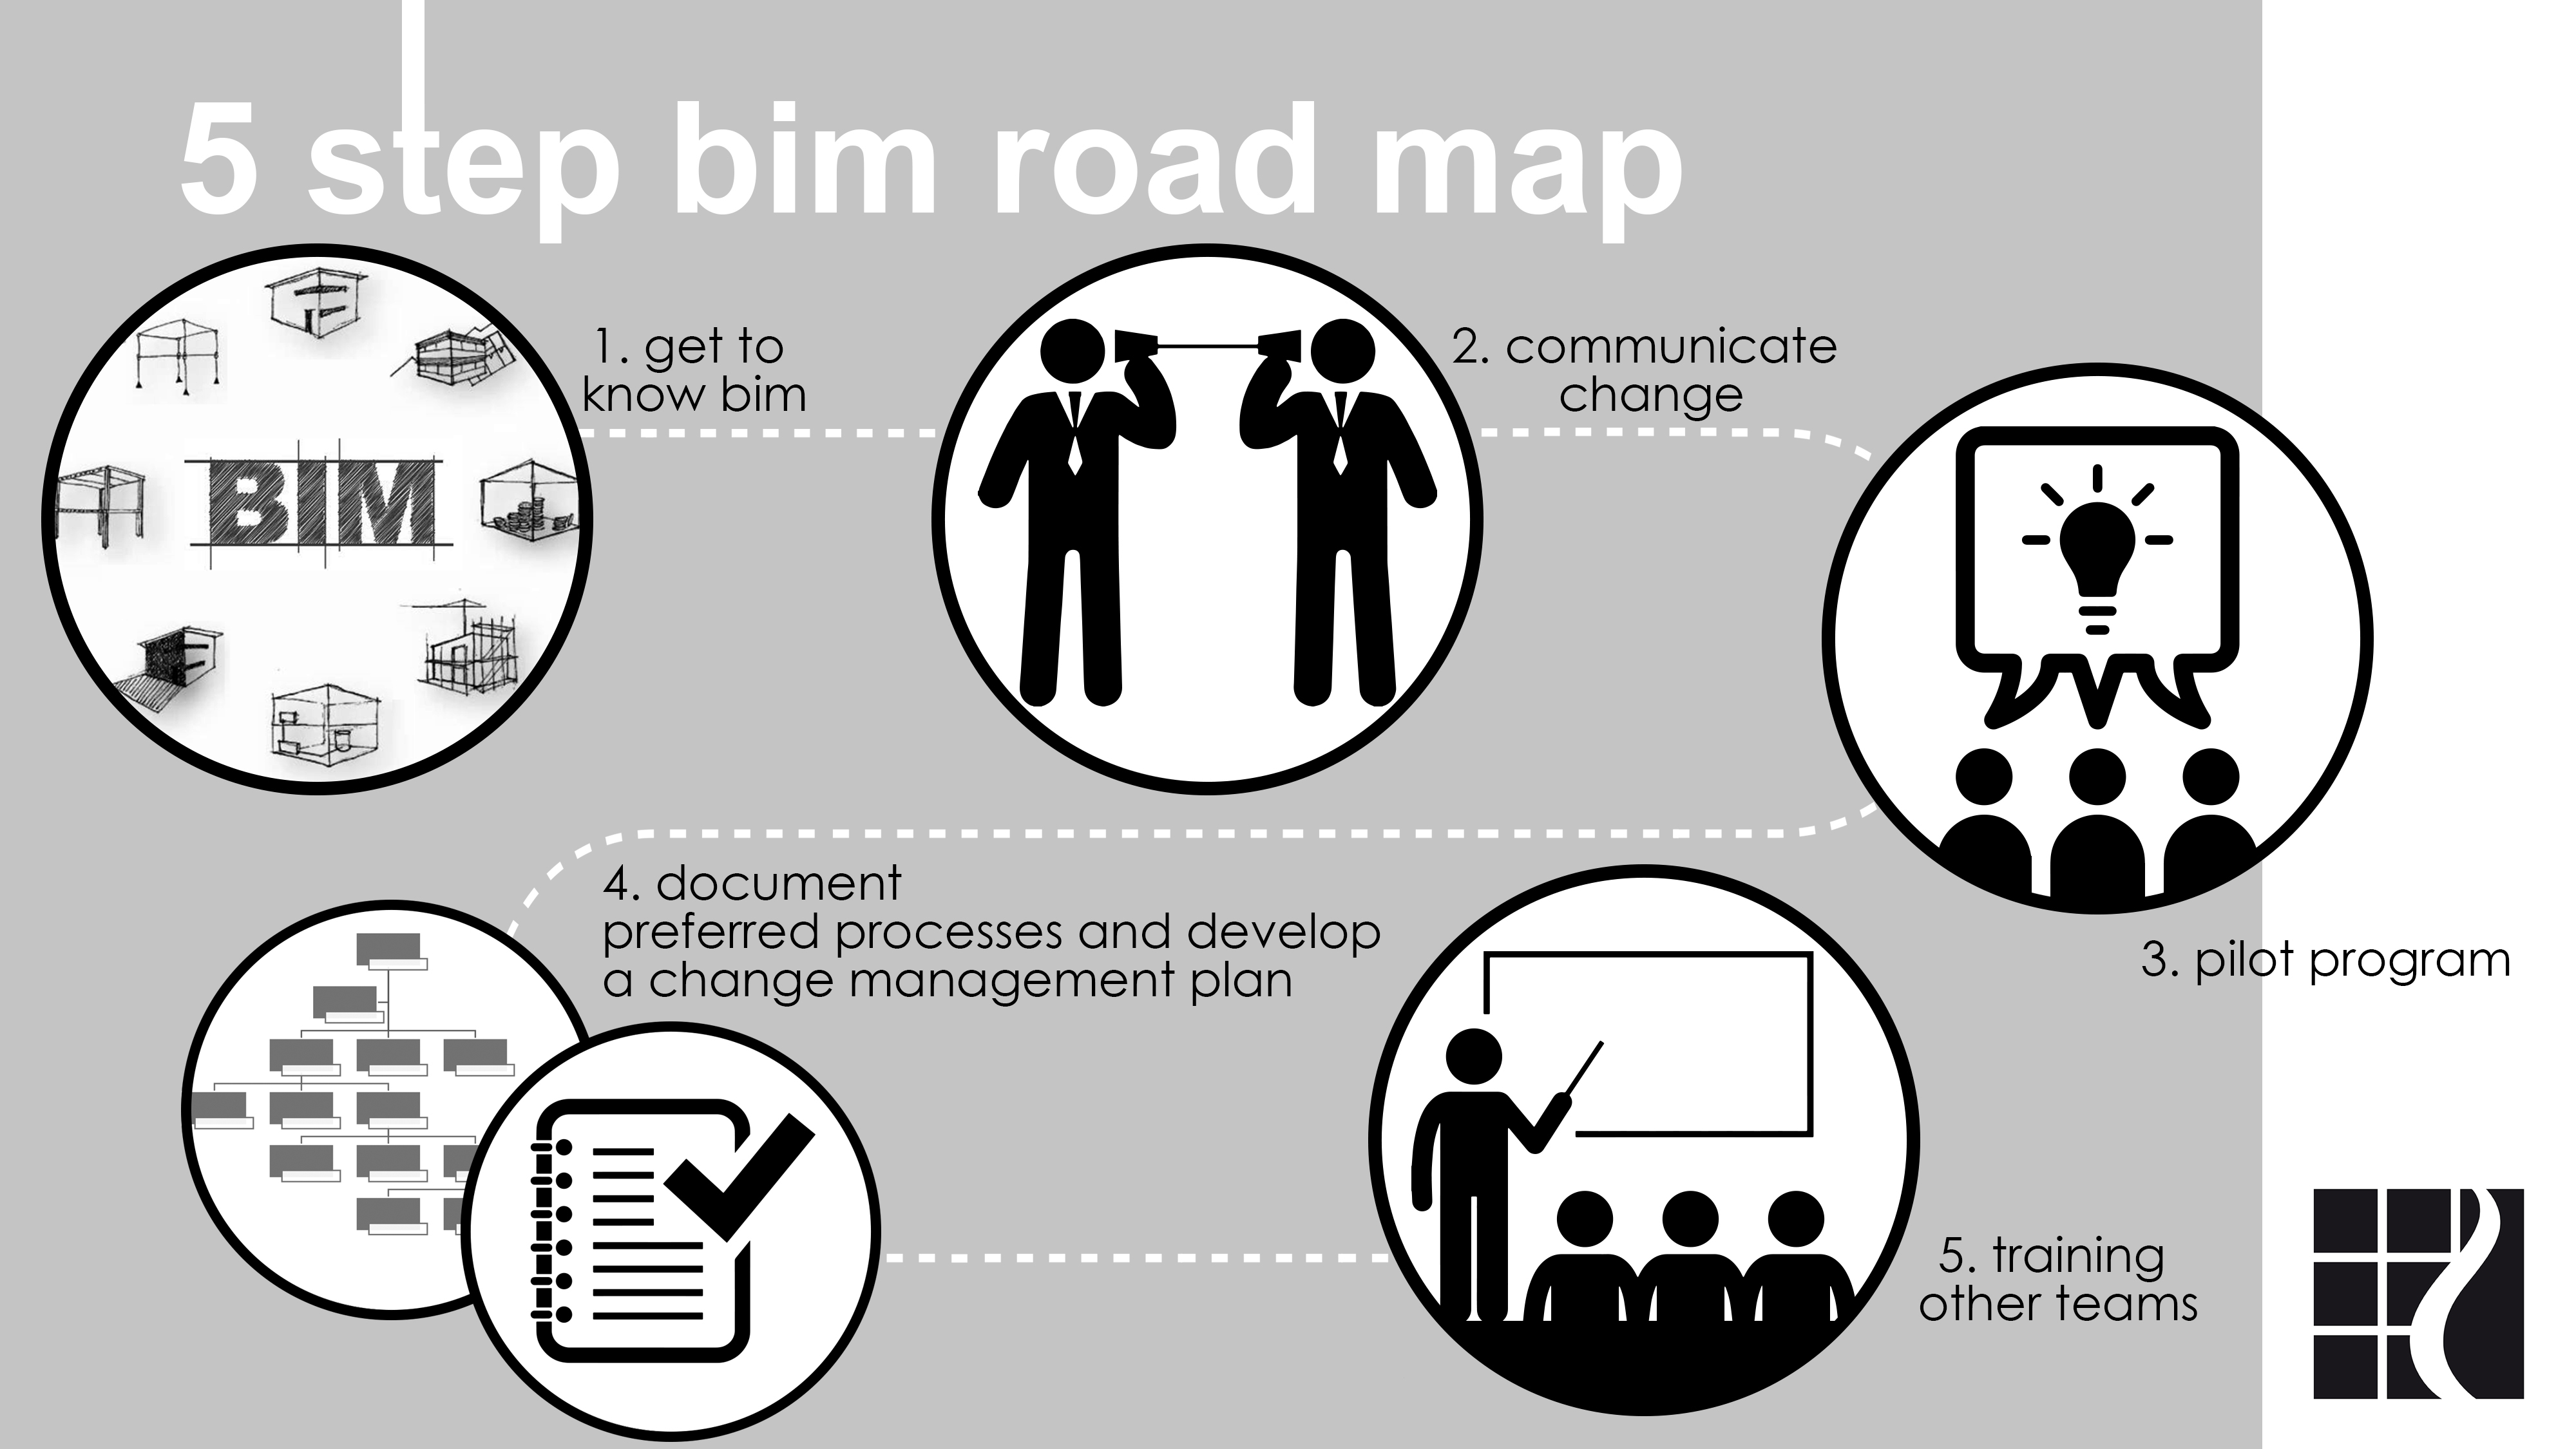 Fig. 2: DSA Architects' five-step BIM implementation plan.